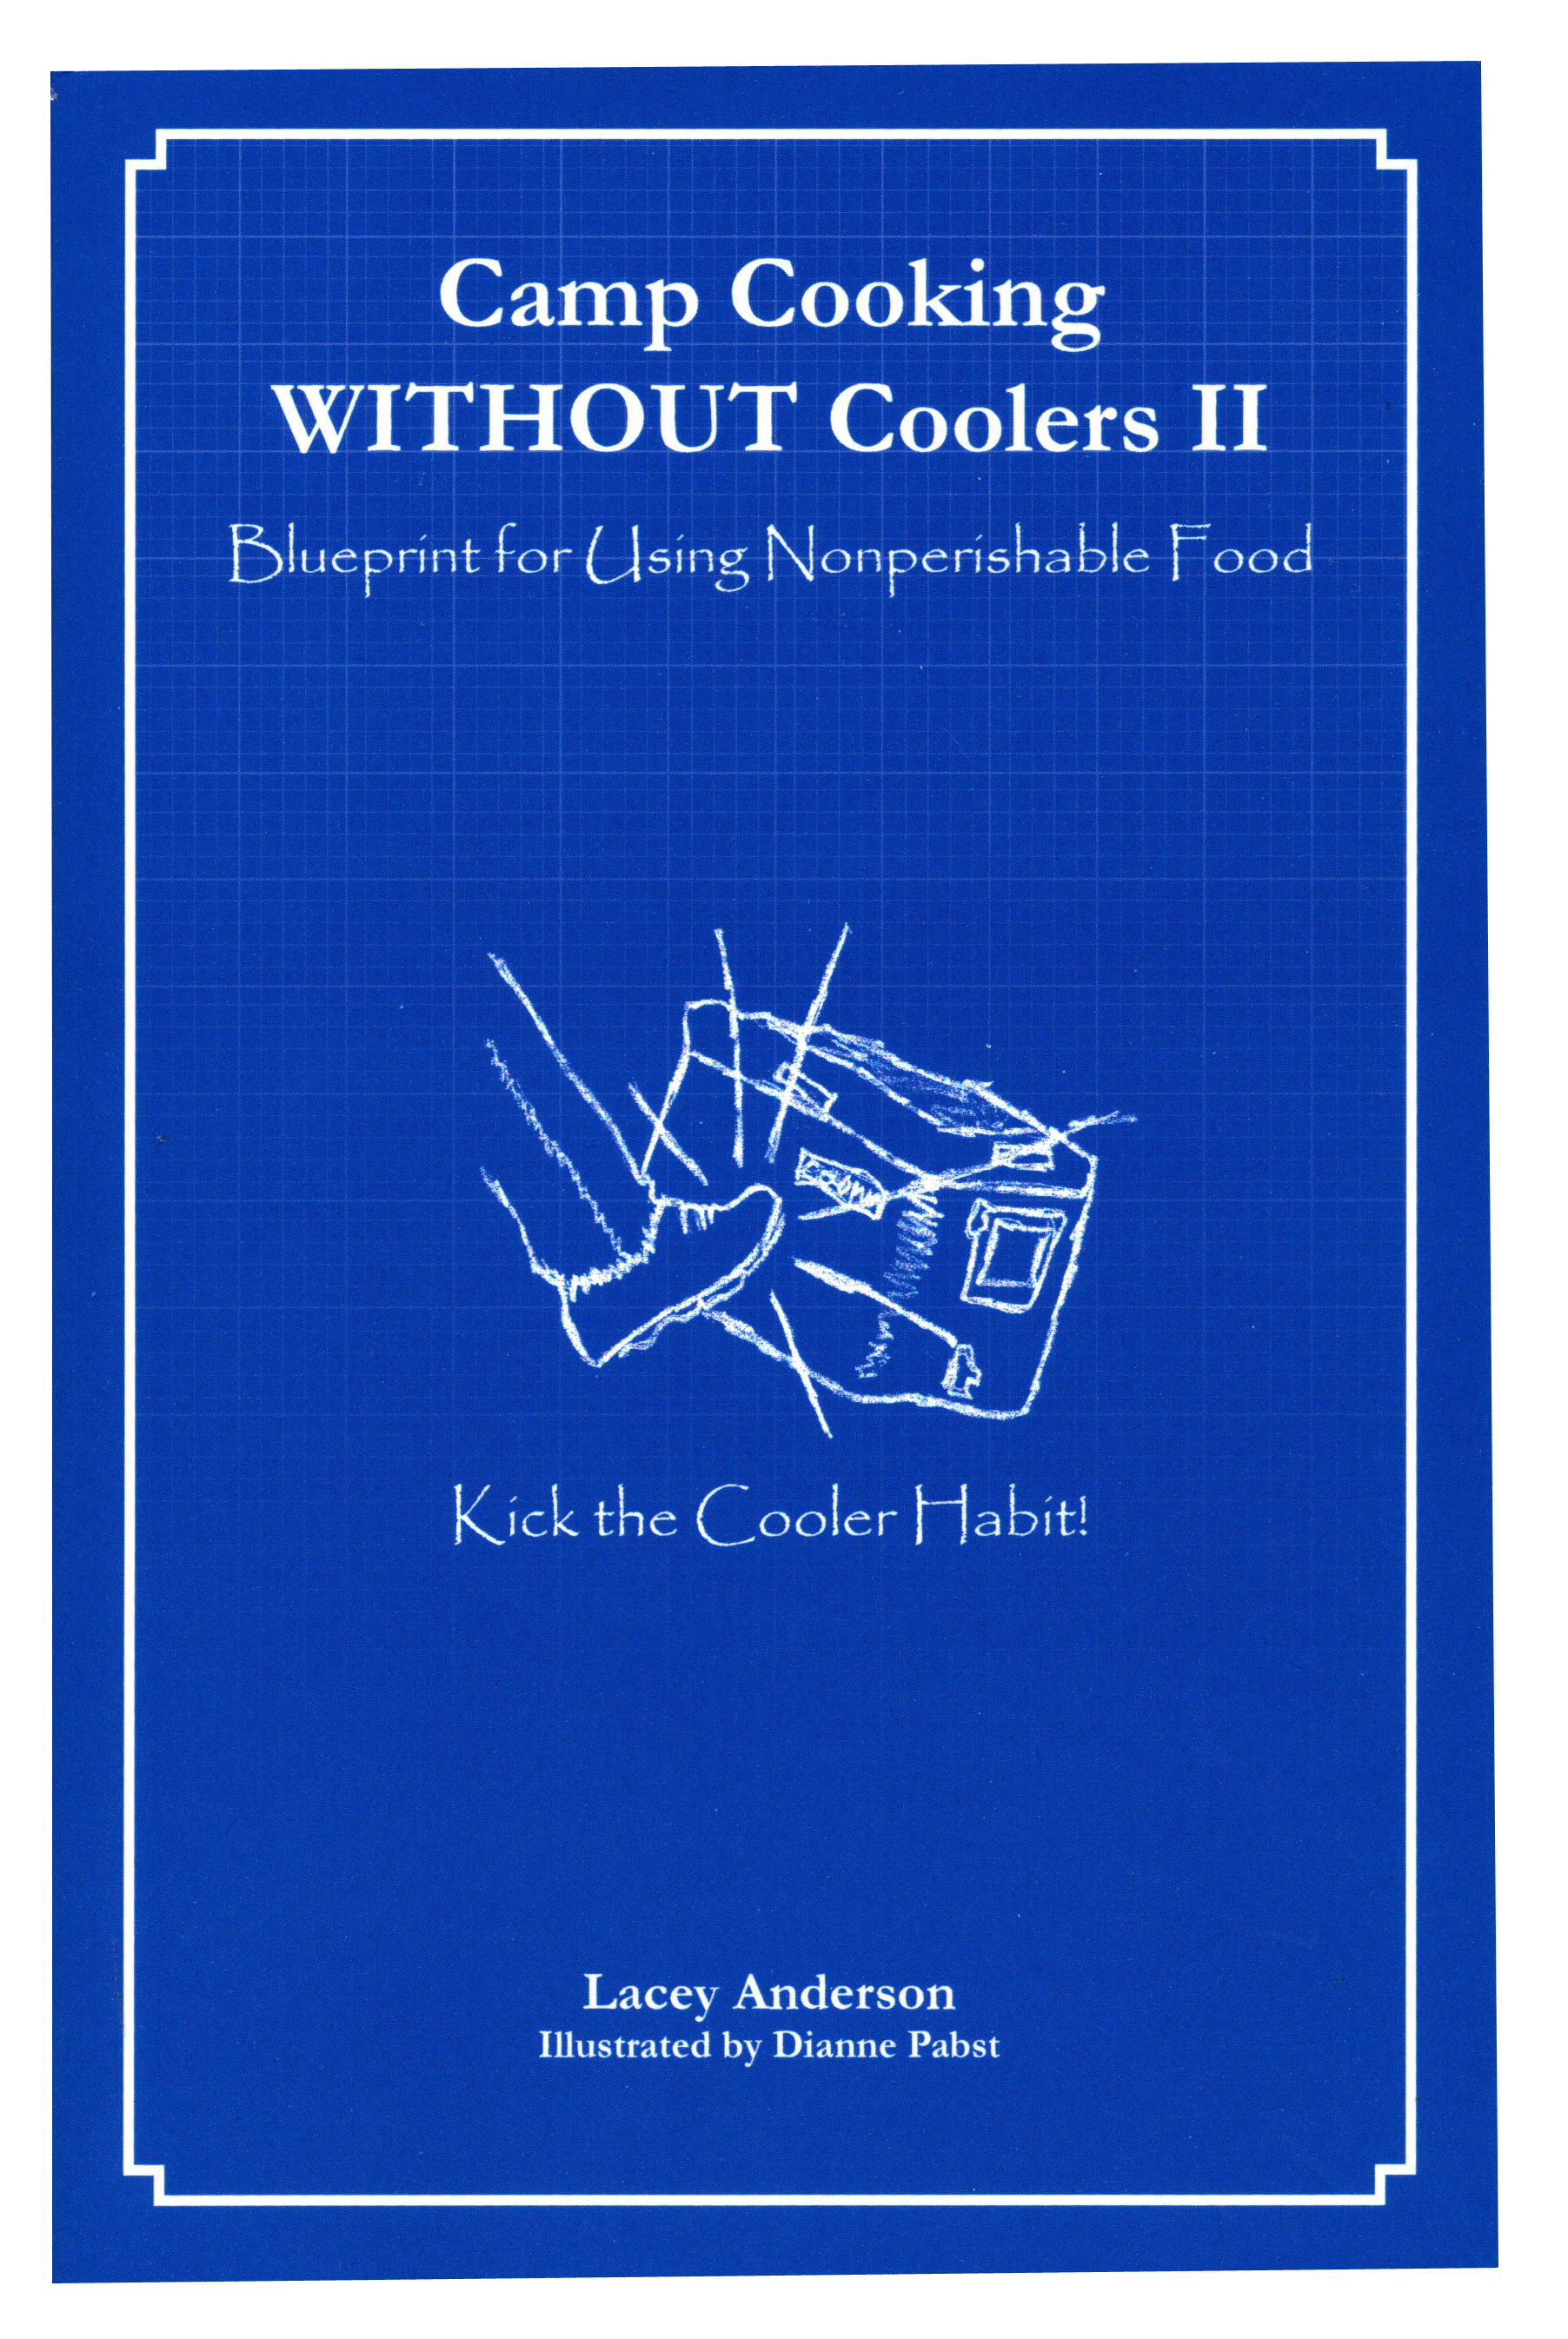 Camp Cooking WITHOUT Coolers II book cover